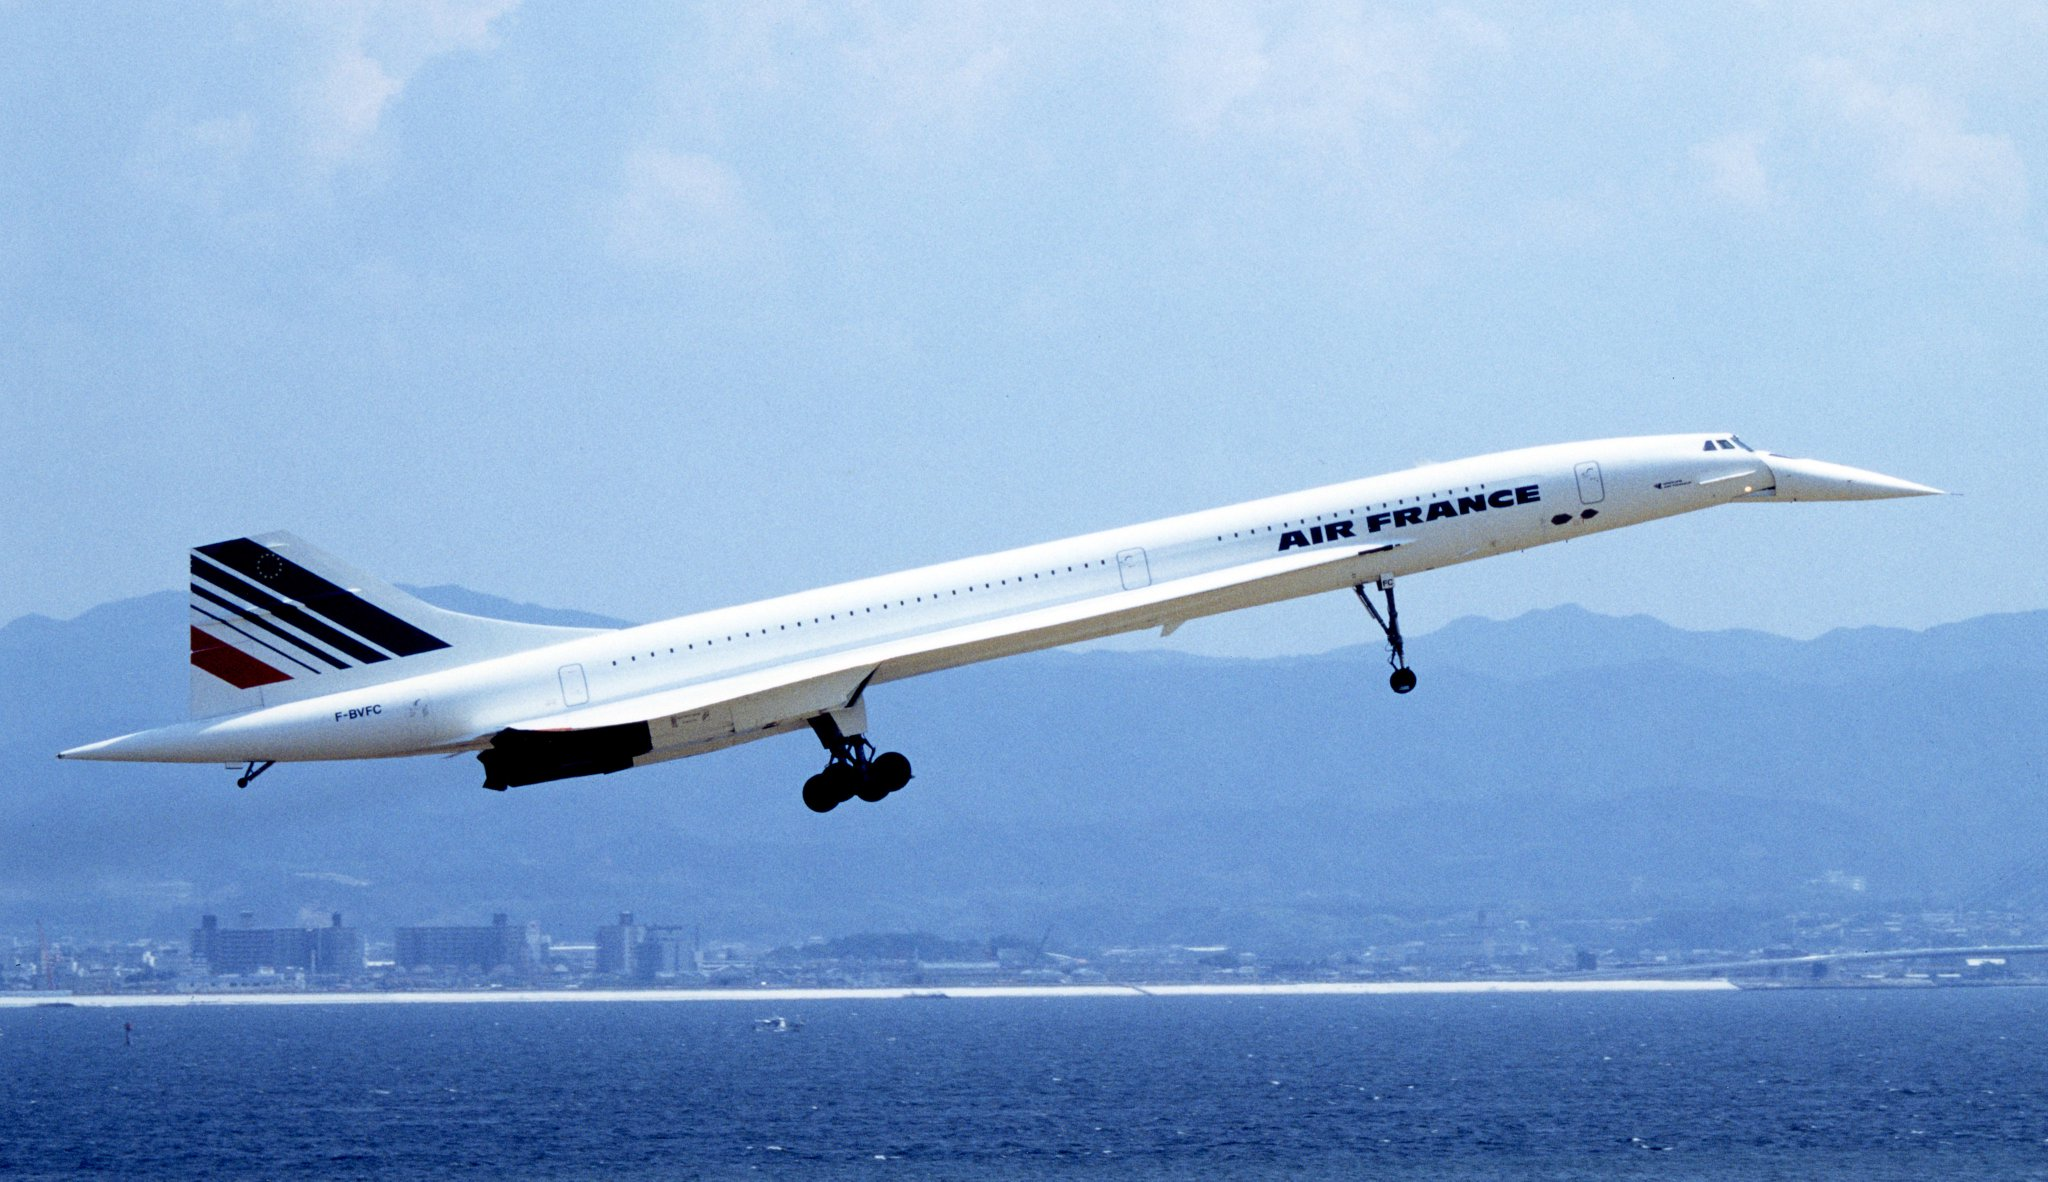 The first commercial flights of the Concorde began in 1976. Today, the Concorde has been retired for 14 years. #ModernFish #LetAmericaFish https://t.co/5mBVh0J5zE